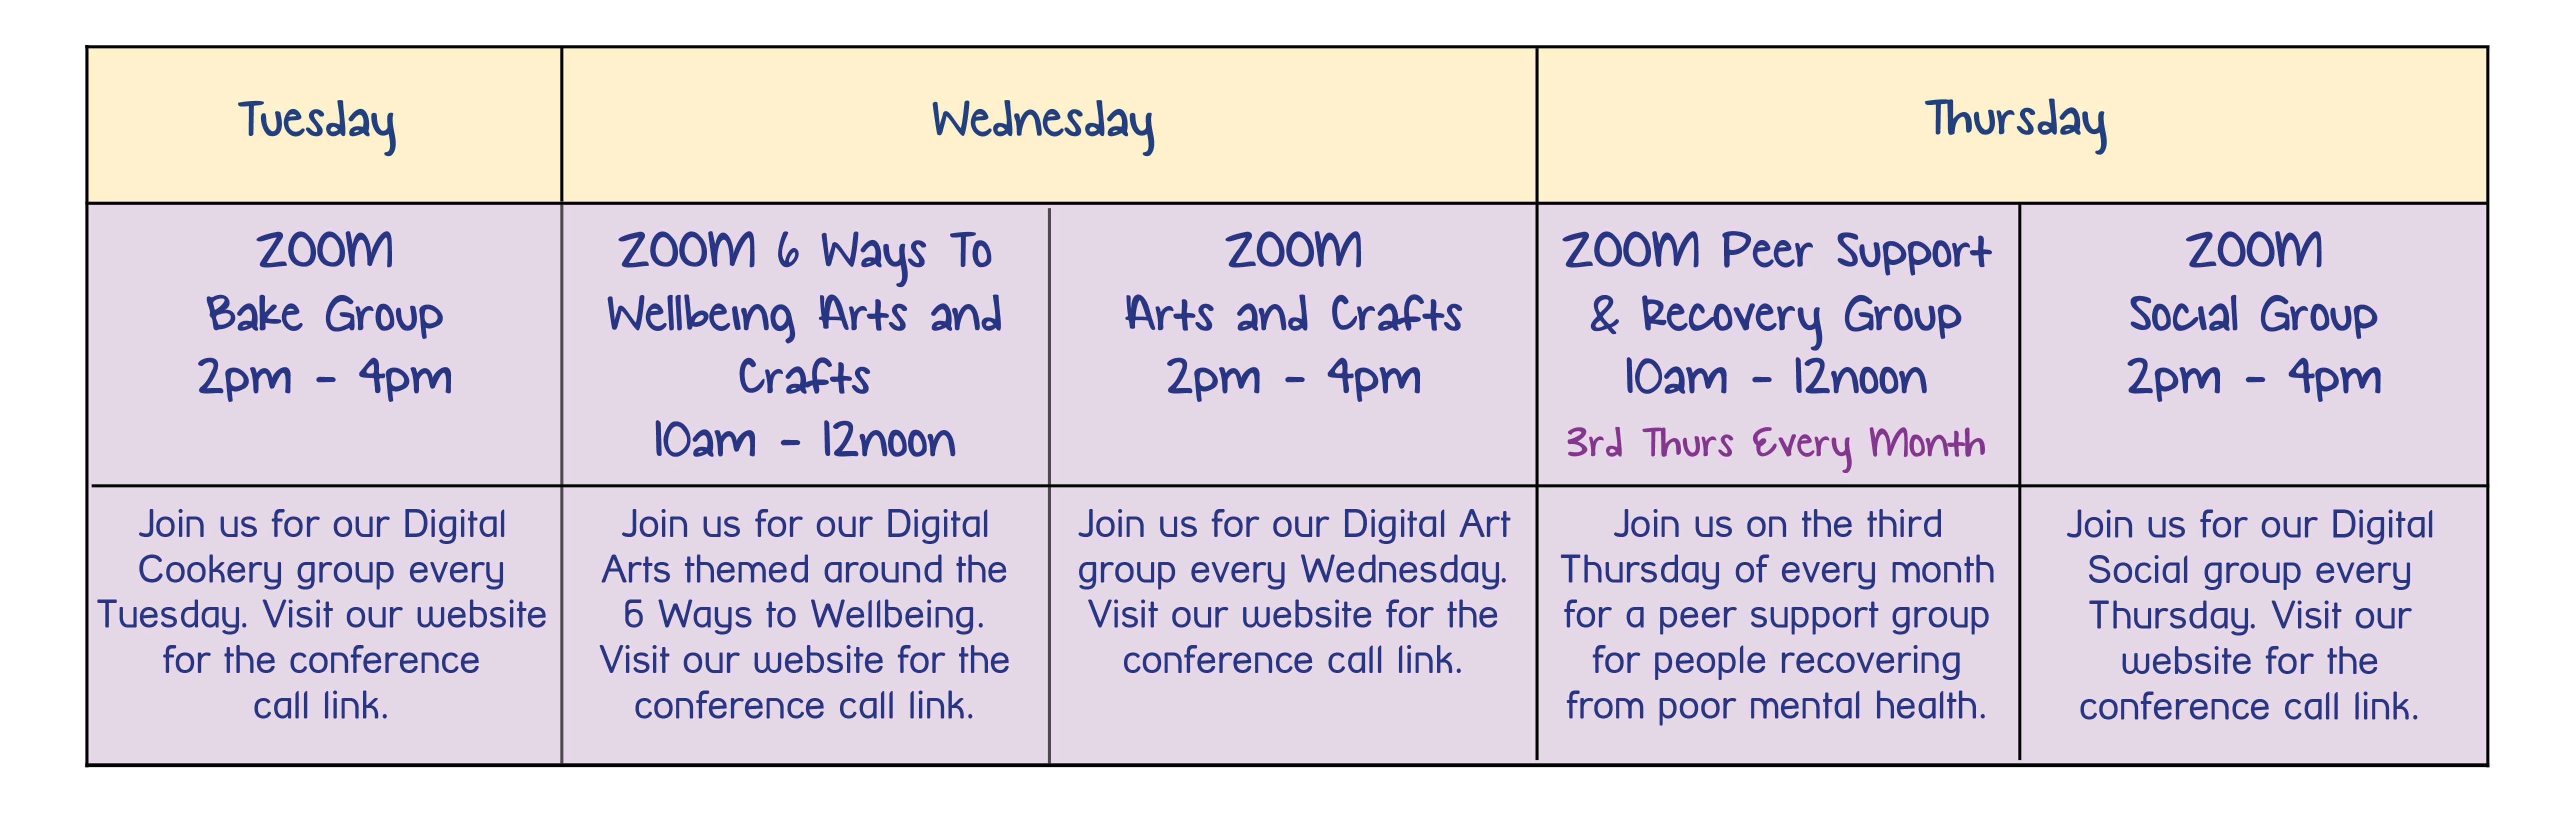 Tuesday. ZOOM Bake Group. 2pm - 4pm. Join us for our Digital Cookery group every Tuesday. Visit our website for the conference call link. Wednesday. ZOOM 6 Ways To Wellbeing Arts and Crafts 10am - 12 noon. Join us for our Digital Arts themed around the 6 Ways to Wellbeing. Visit our website for the conference call link. ZOOM Arts and Crafts 2pm - 4pm. Join us for our Digital Art Group every Wednesday. Visit our website for the conference call link. Thursday. ZOOM Peer Support & Recovery Group. 10am - 12noon. 3rd Thurs of Every Month. Join us on the third Thursday of every month for a peer support group for people recovering from poor mental health. ZOOM Social Group 2pm - 4pm. Join us for our Digital Social Group every Thursday. Visit our website for the conference call link.